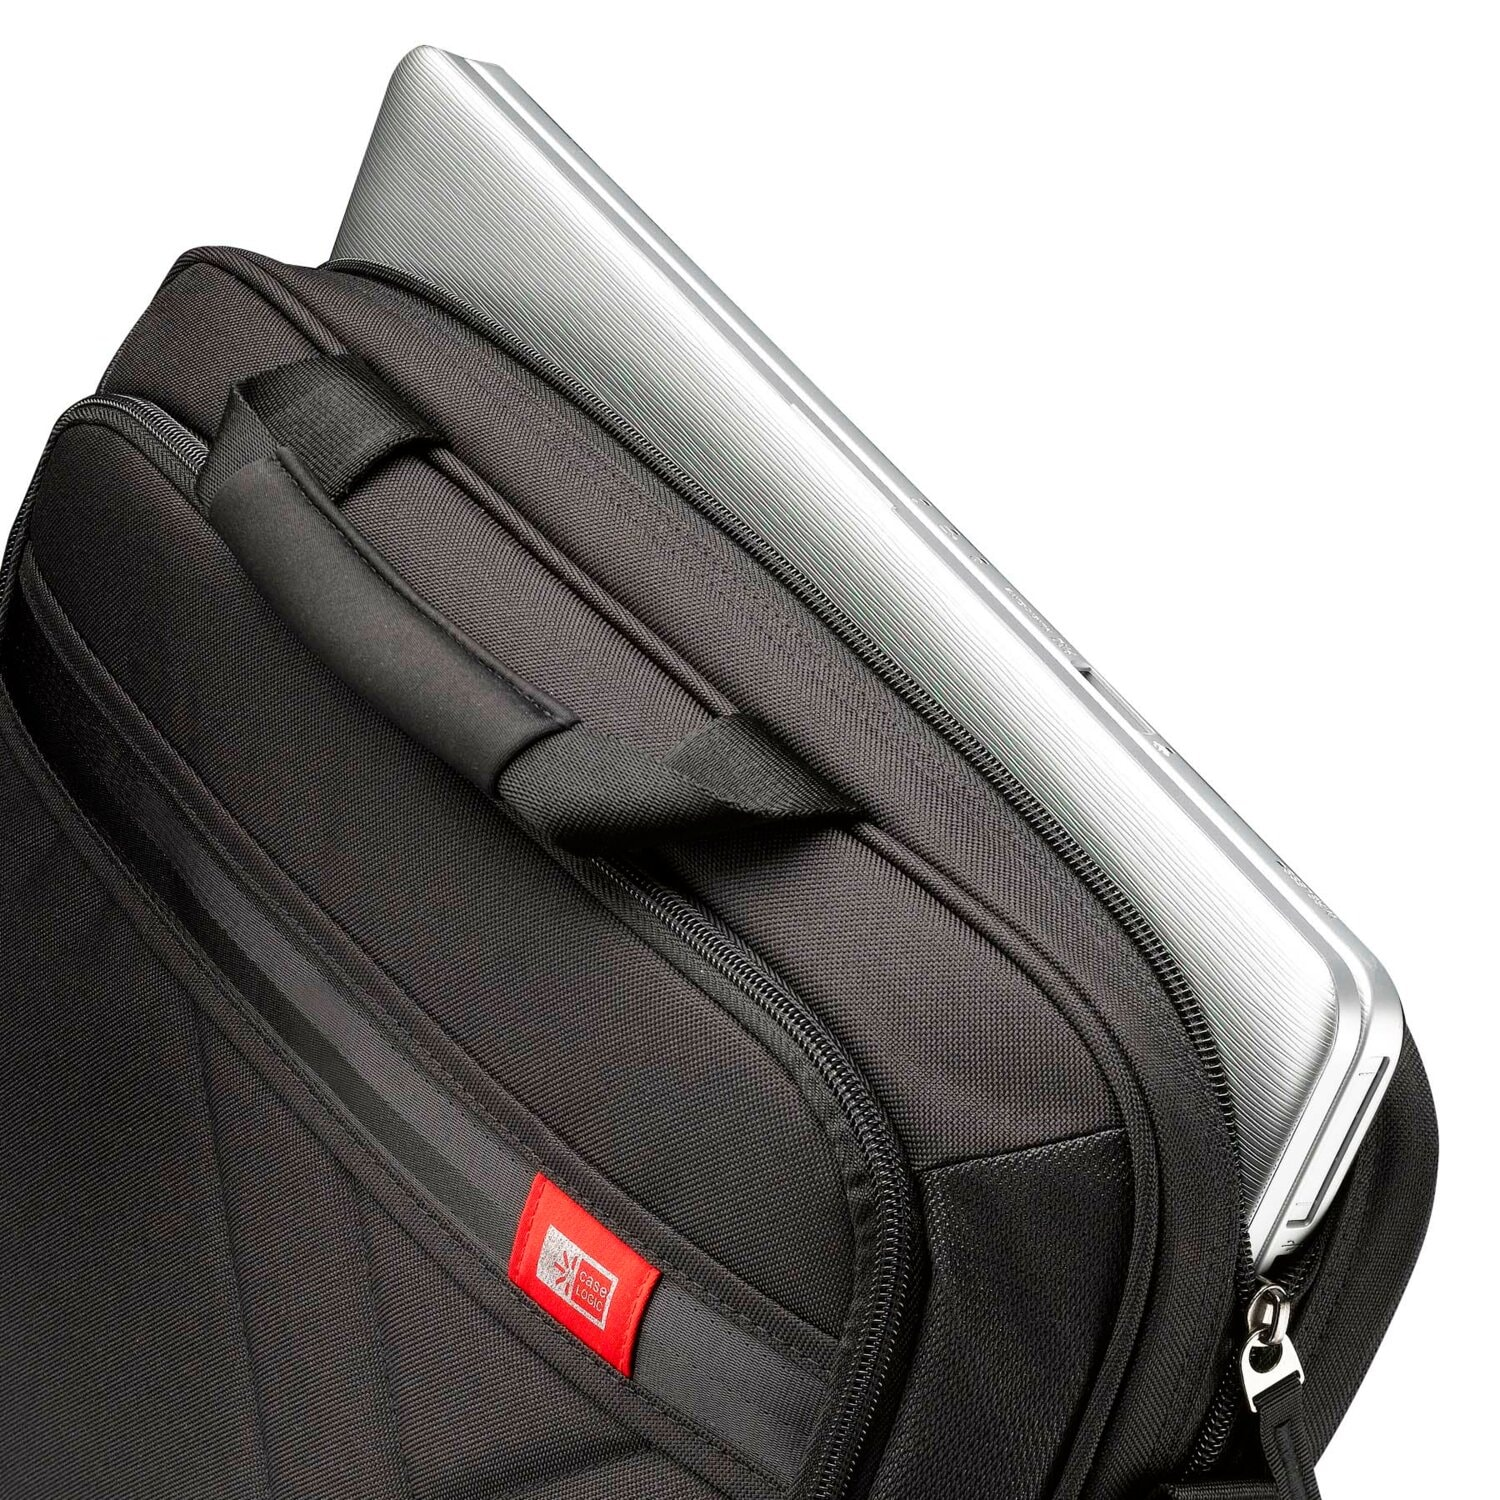 Torba CASE LOGIC Torba na laptopa 15.6 Czarny